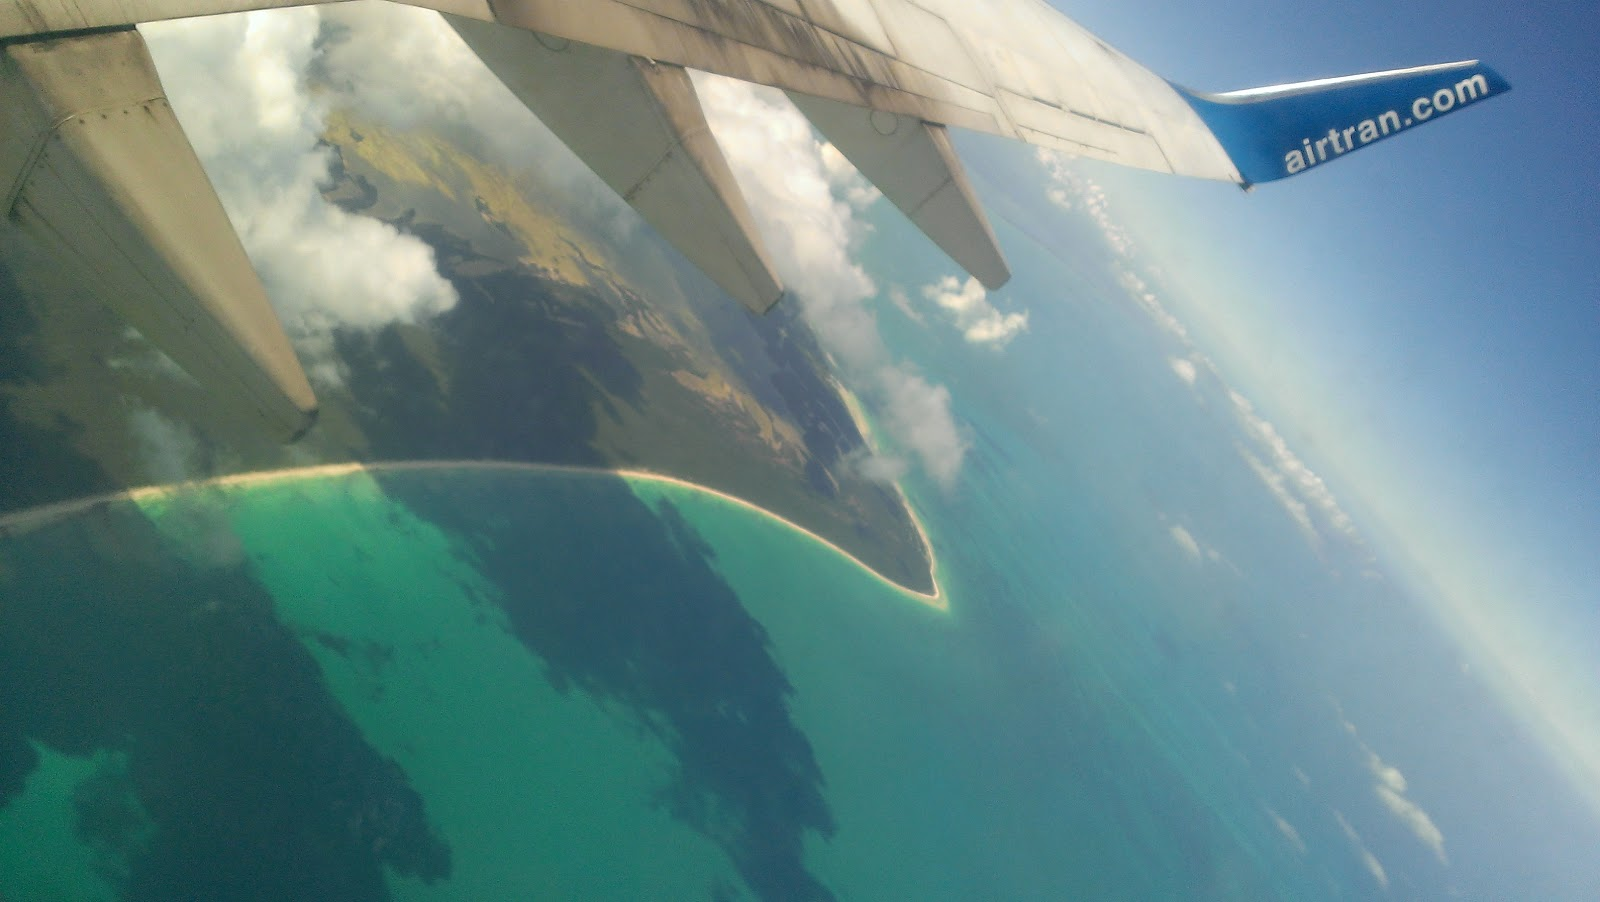 view of a shoreline from an airplane window with wing